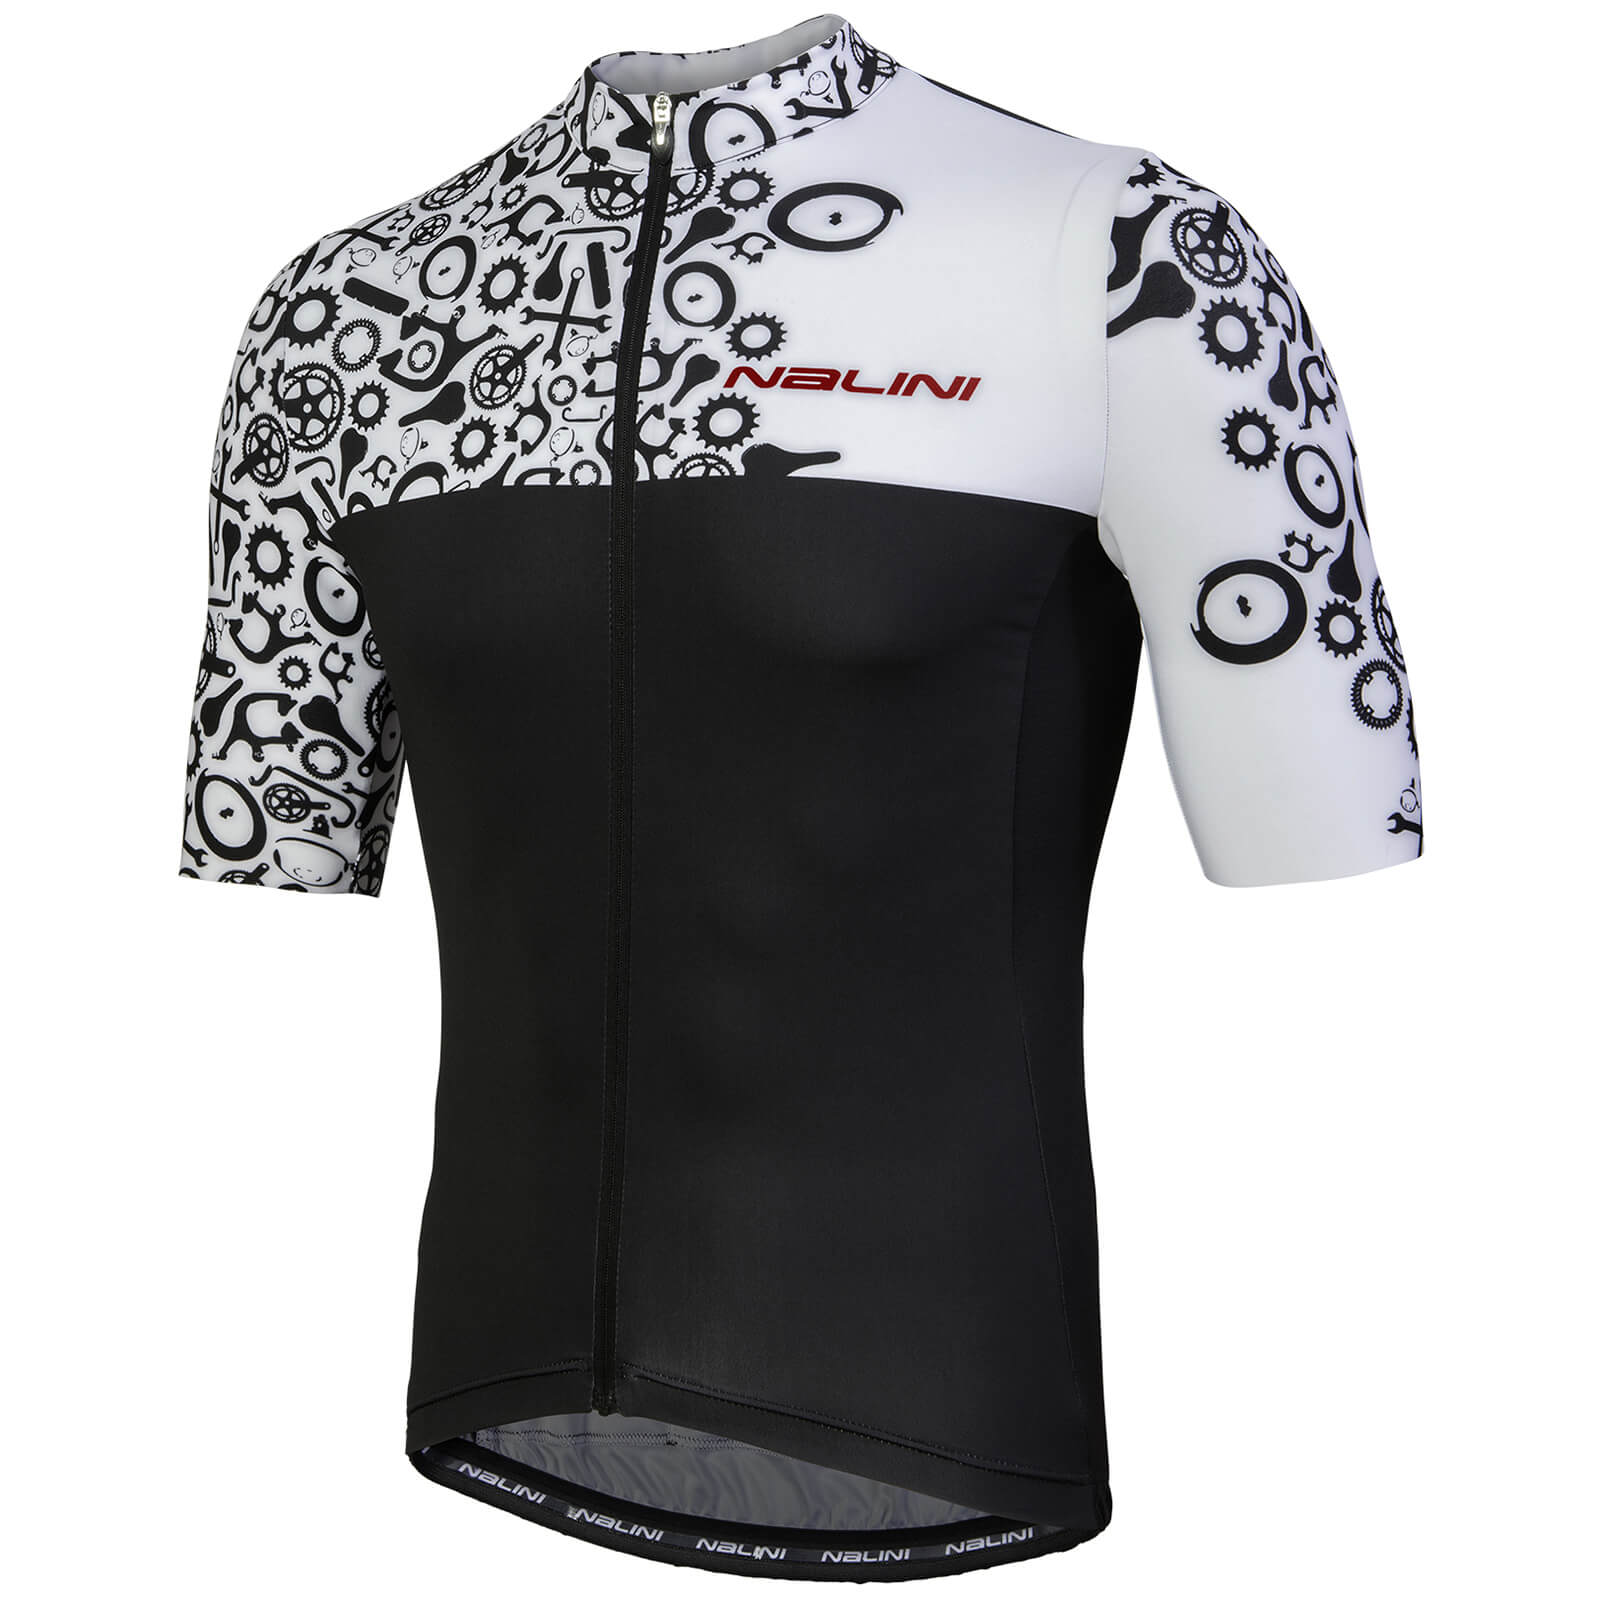 BRAND NEW 3XL Short Sleeve Cycling Jersey  1//2 Length Zipper Jersey by Squadra